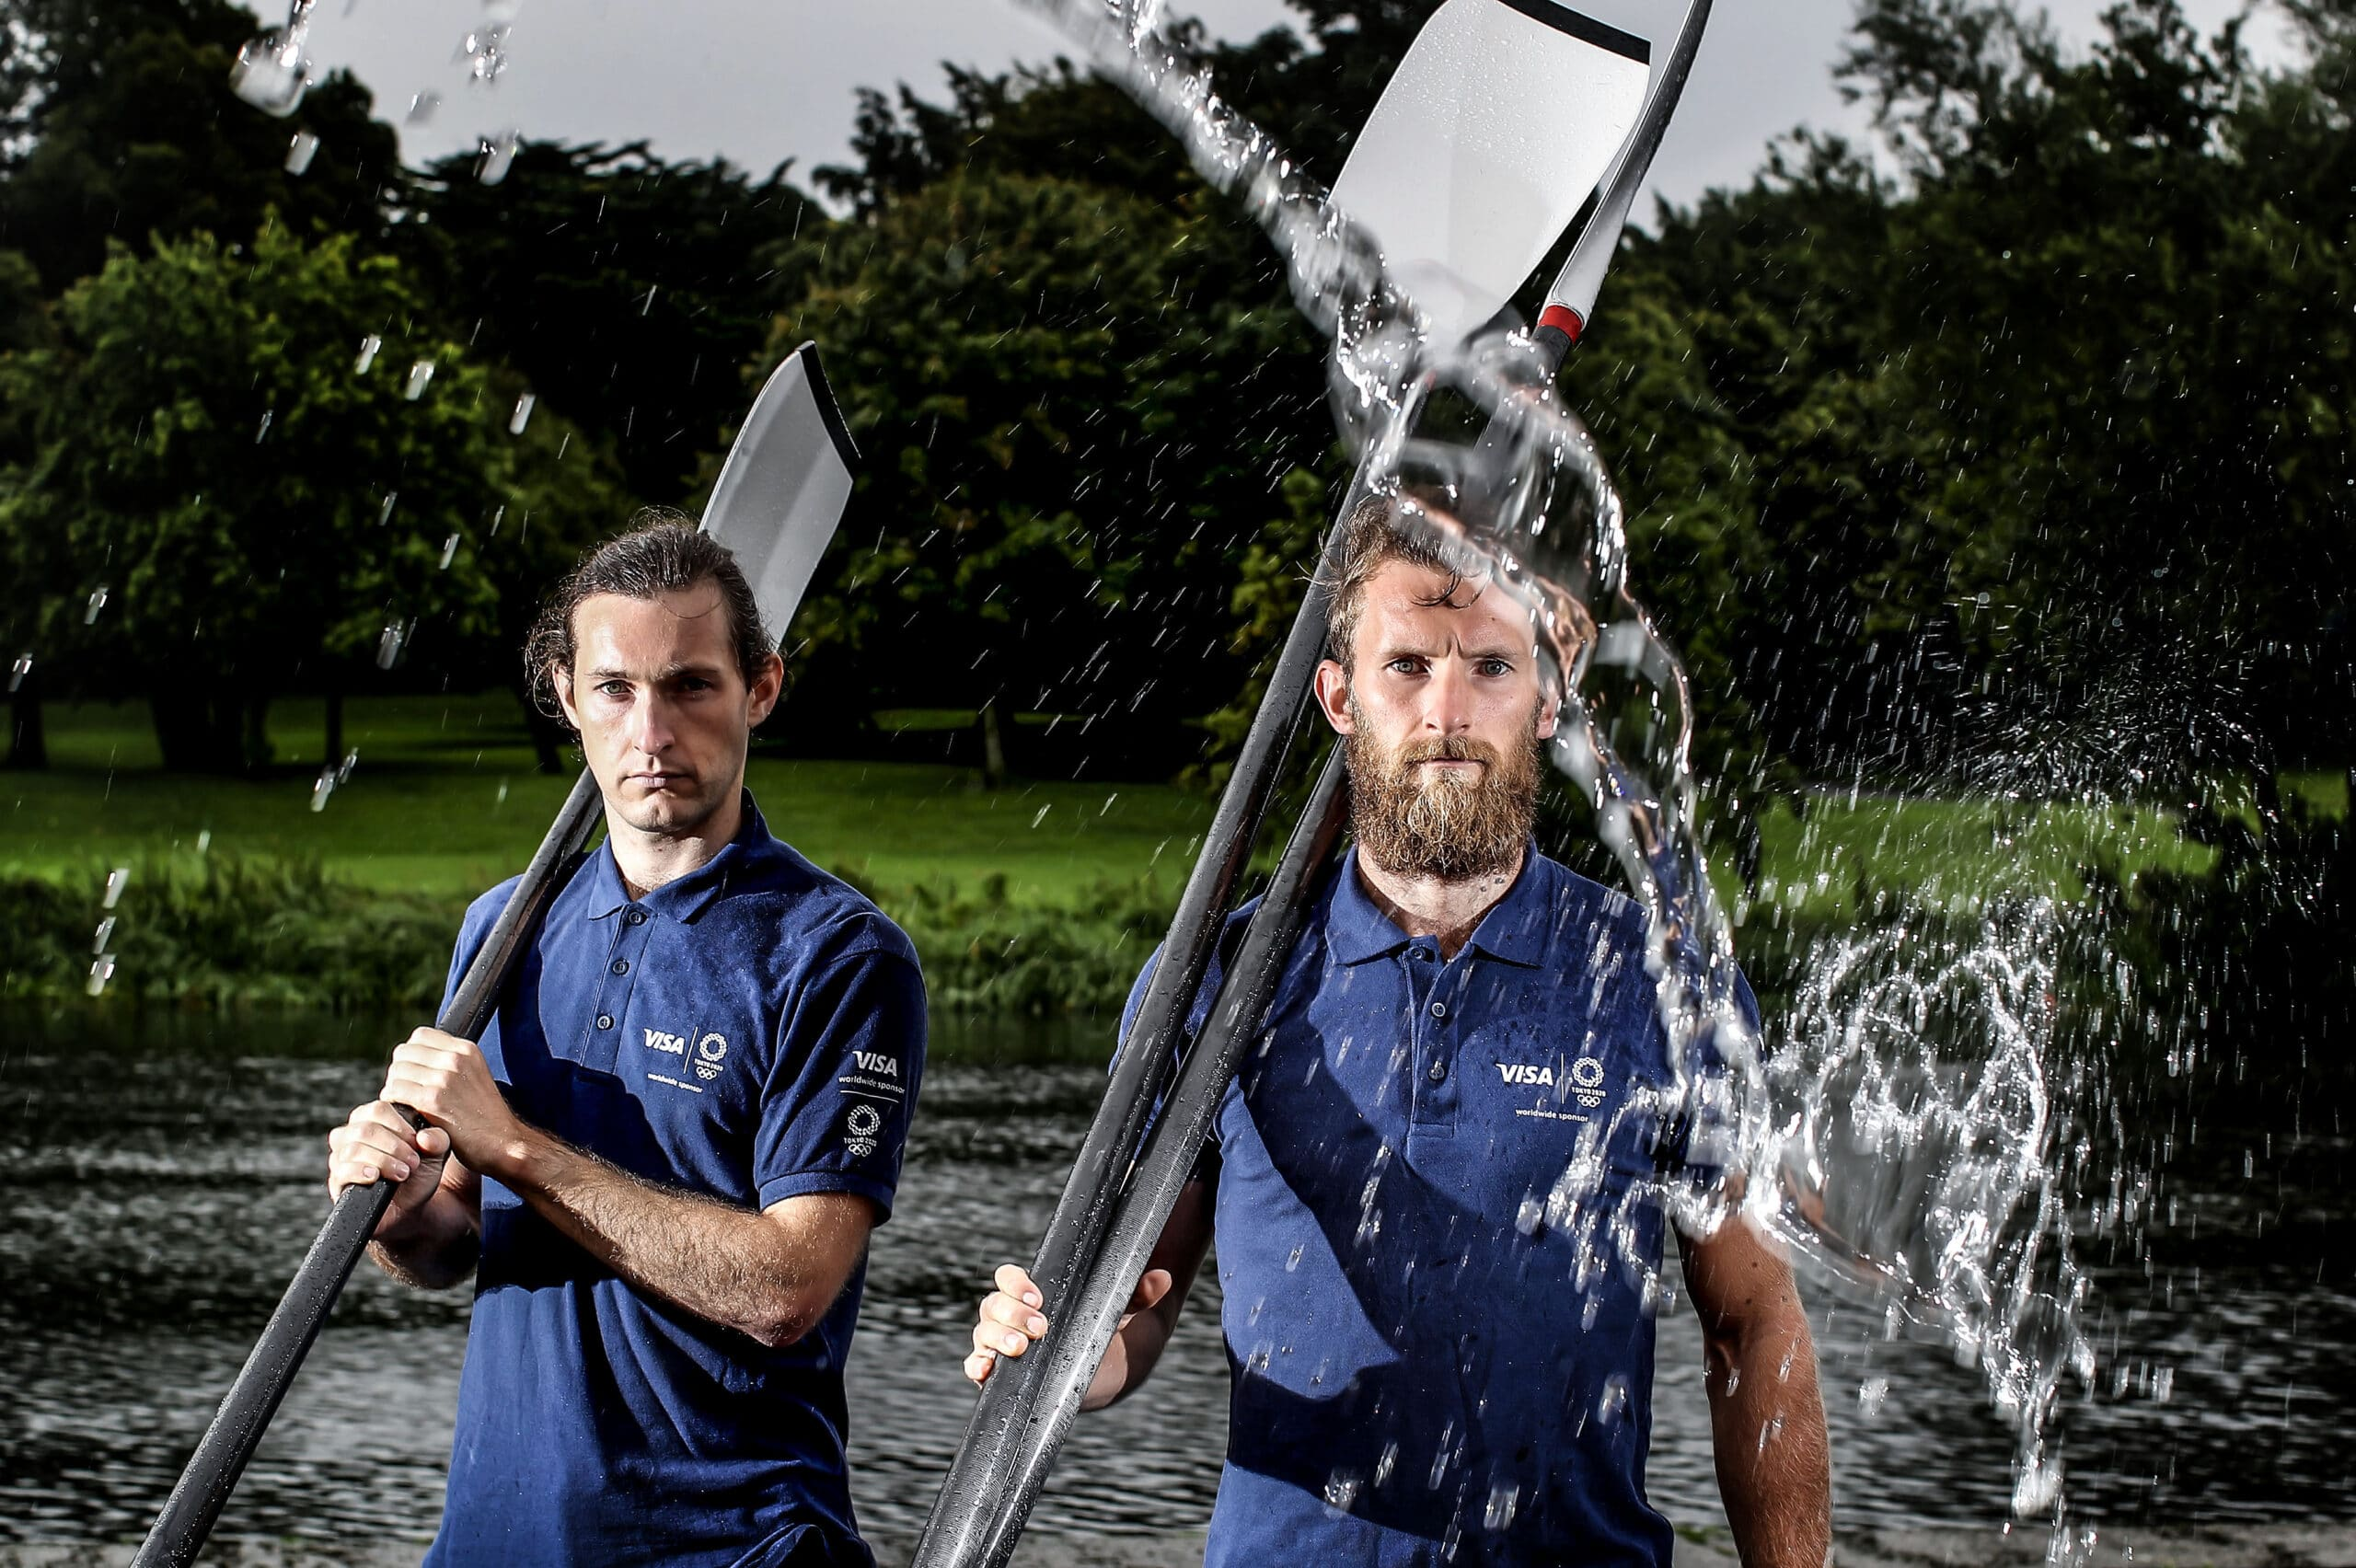 Visa announces extension of support for Paul and Gary O'Donovan